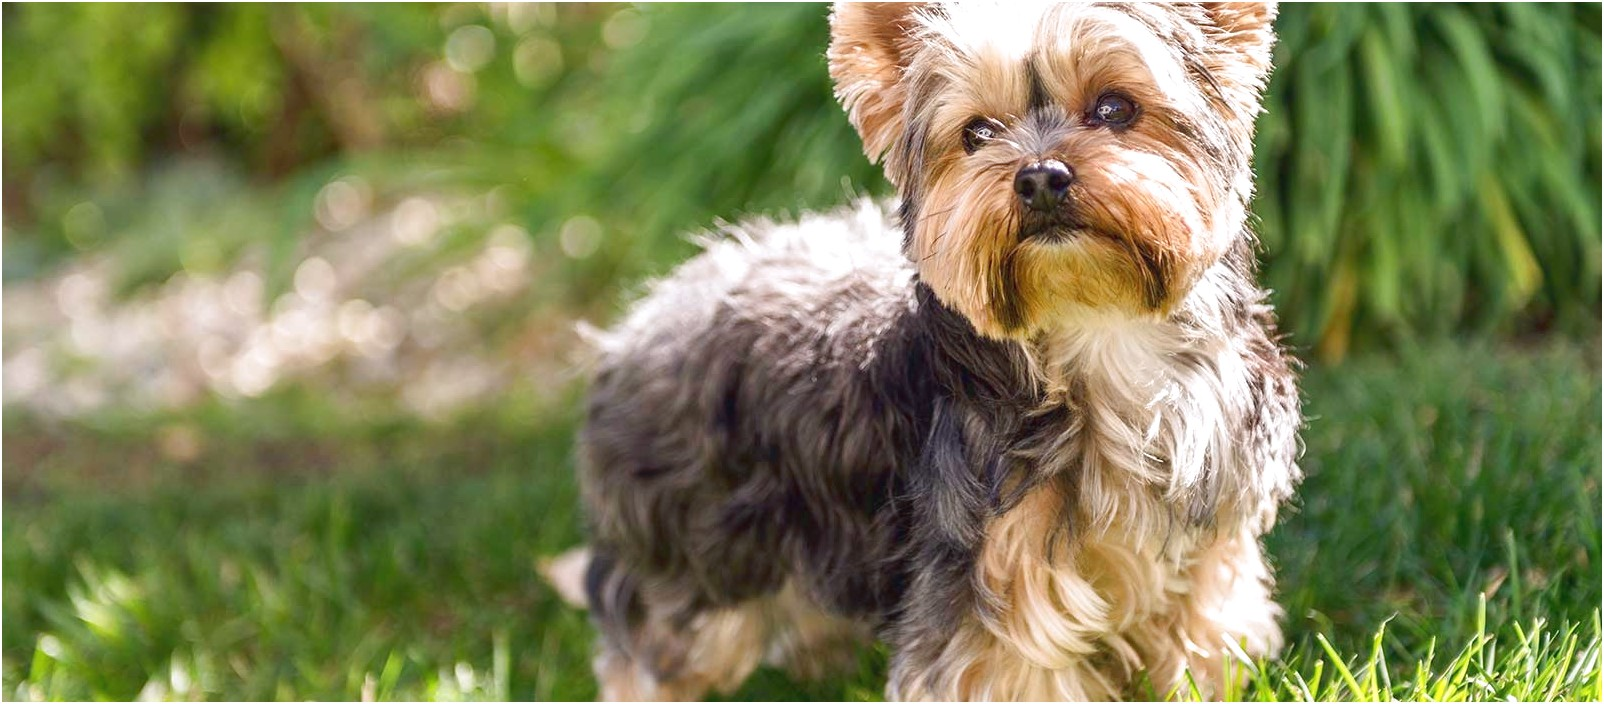 photo of a yorkshire terrier